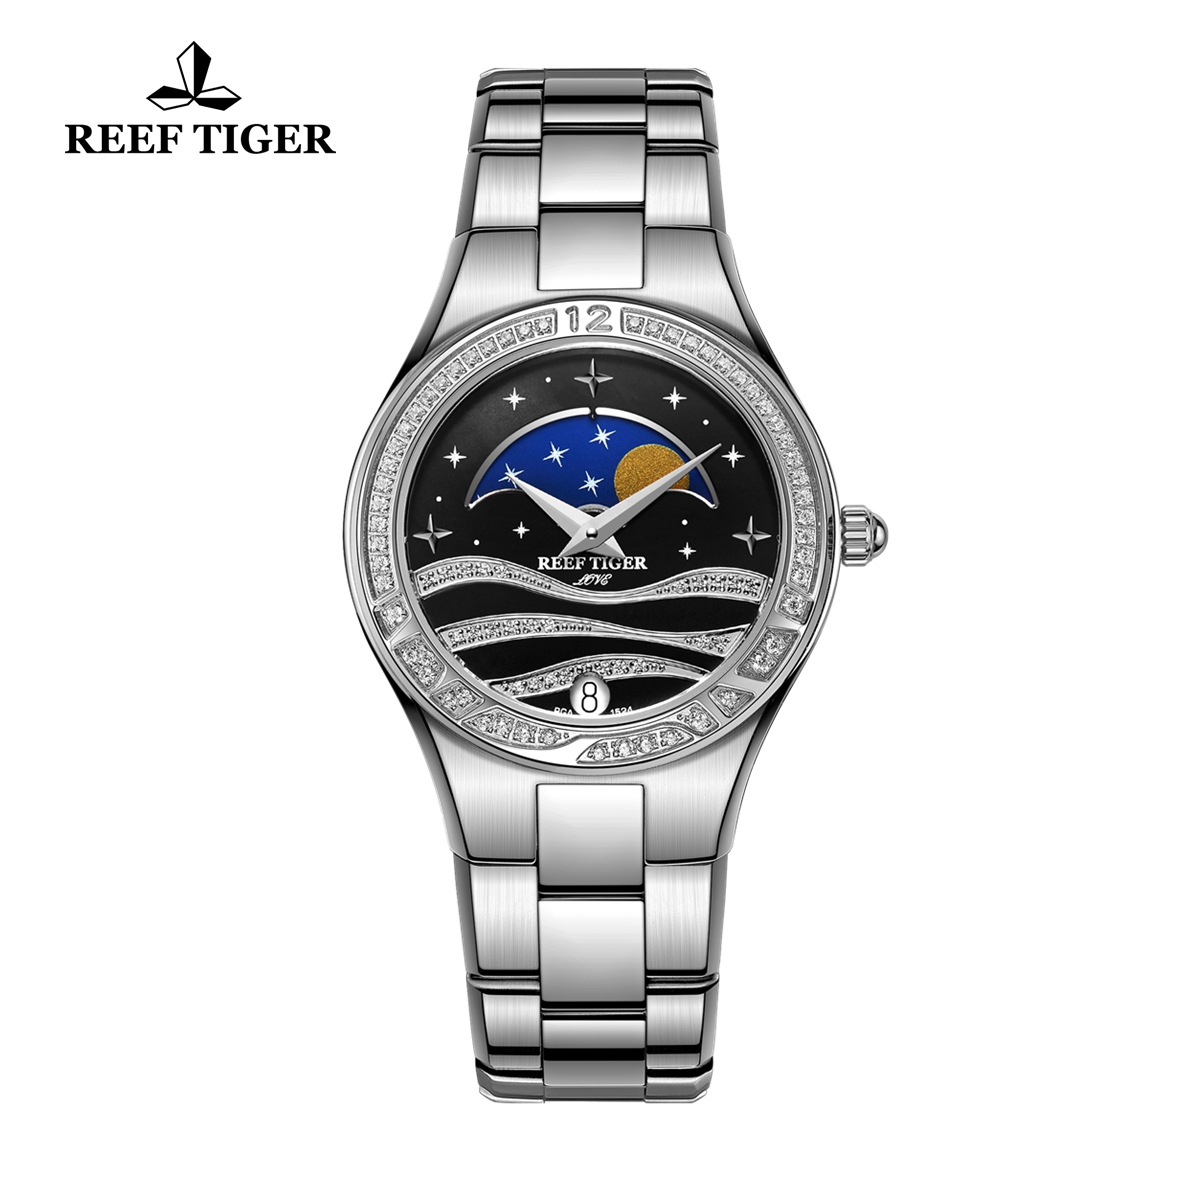 Reef Tiger Love Stars Fashion Quartz Watch Steel Black Dial RGA1524-YBY